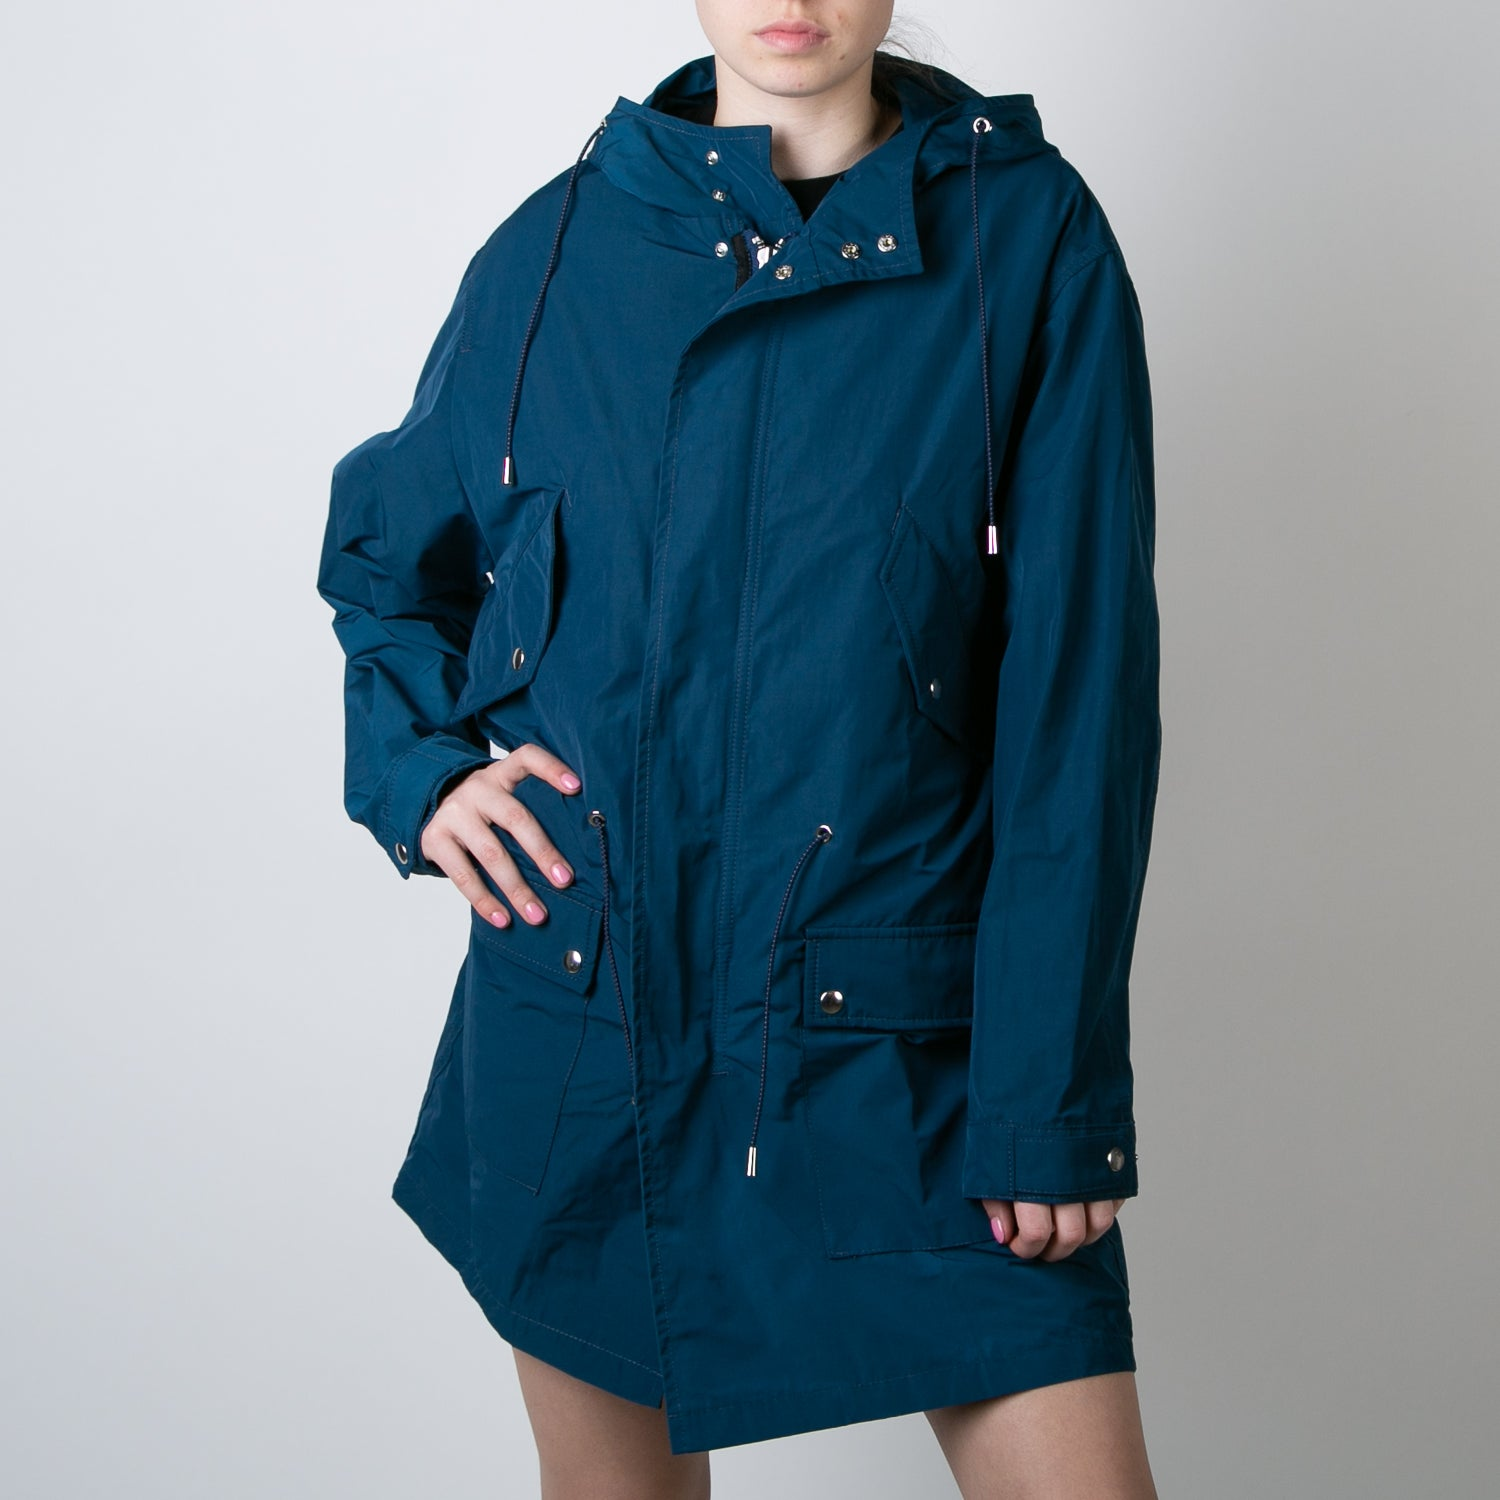 blue fishtail jacket by One Culture